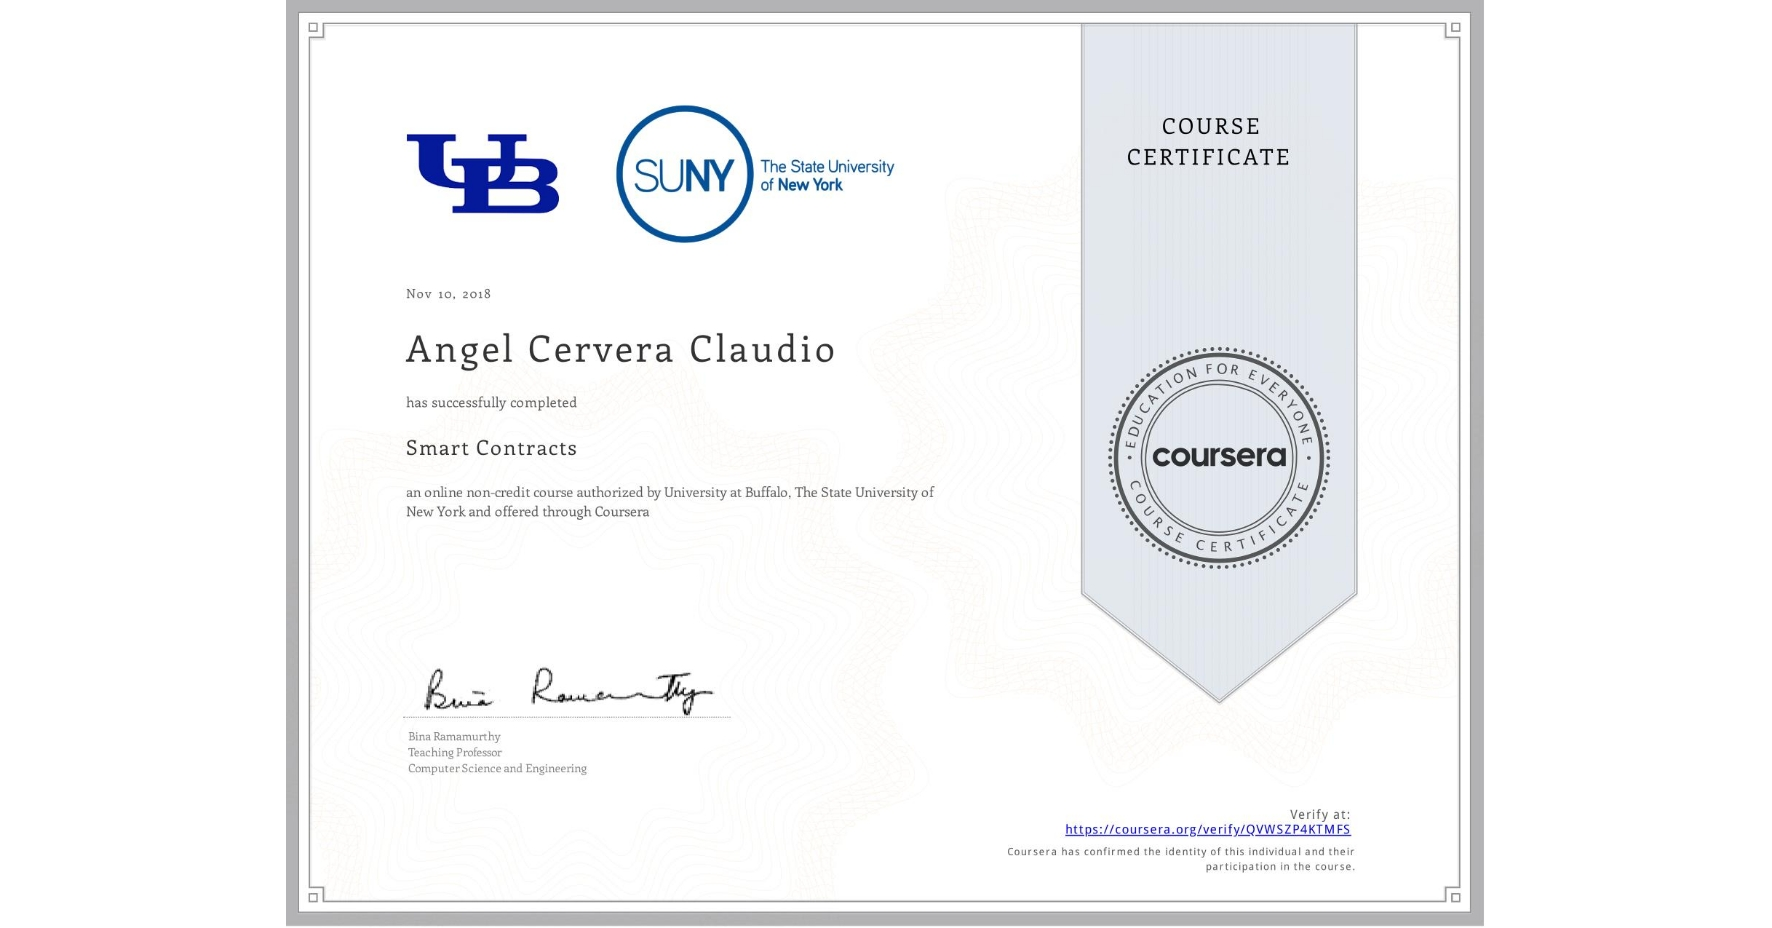 View certificate for Angel Cervera Claudio, Smart Contracts, an online non-credit course authorized by University at Buffalo & The State University of New York and offered through Coursera